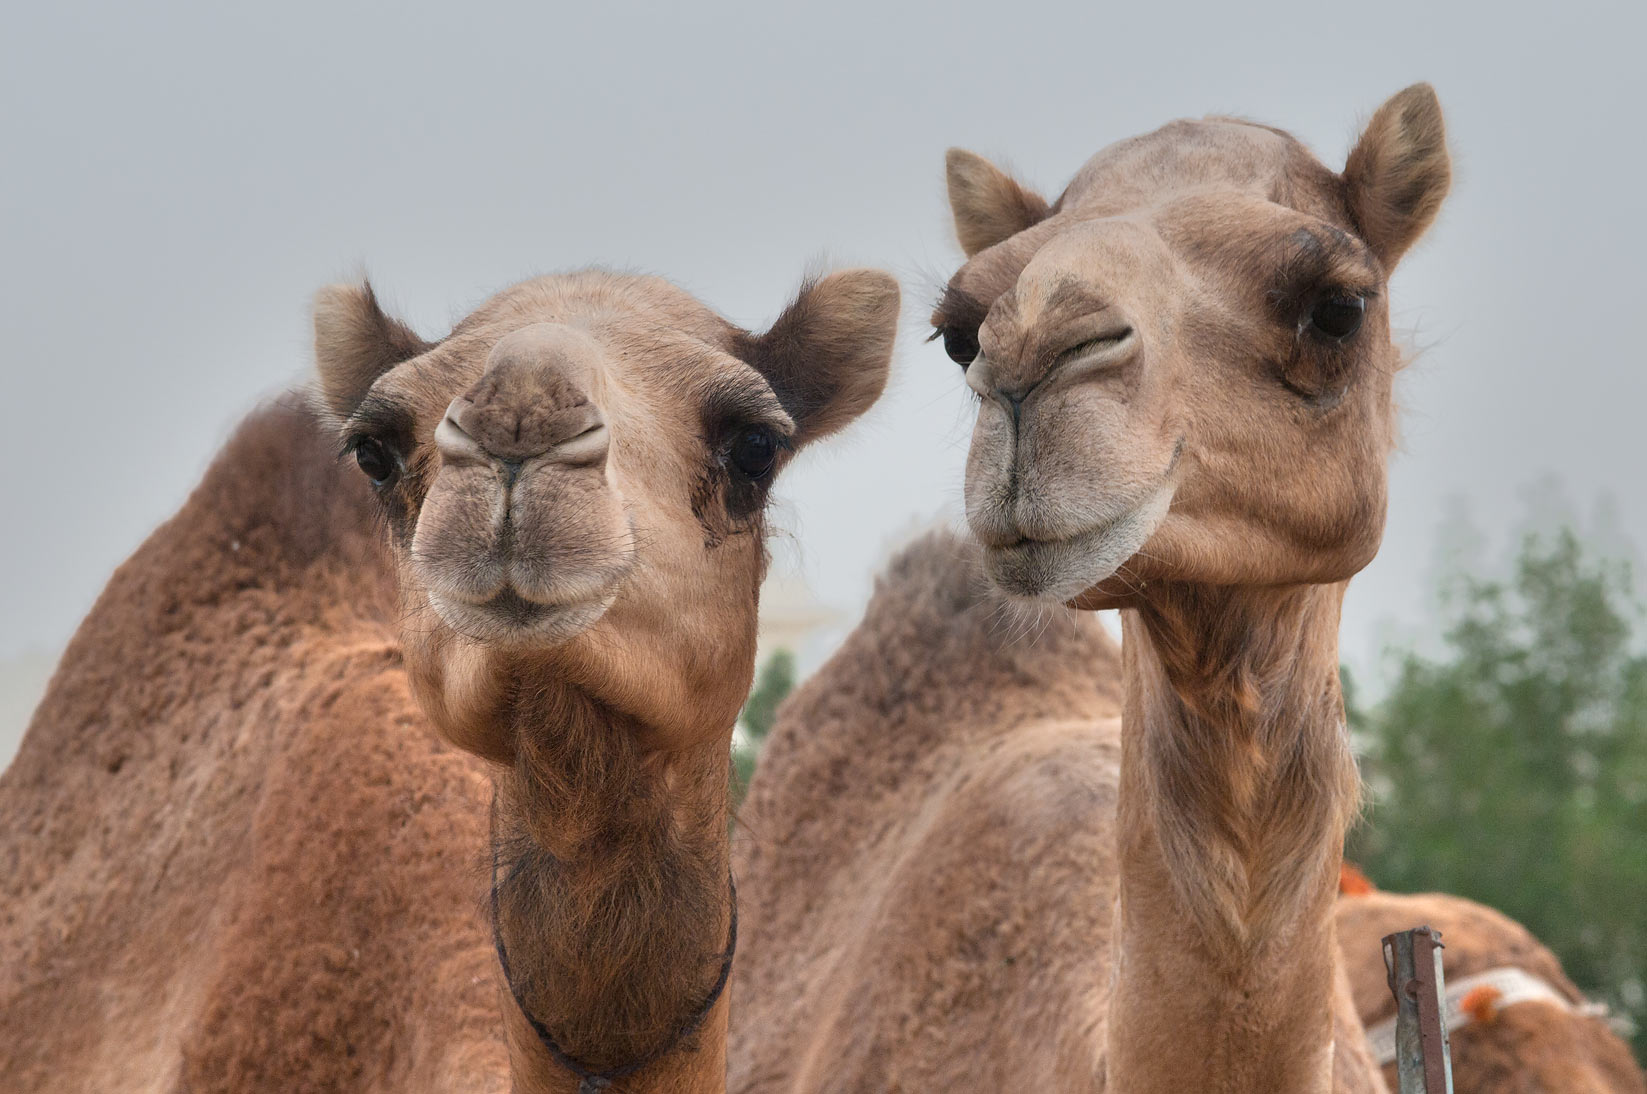 Pair of camels in Camel Market, Wholesale Markets area. Doha, Qatar